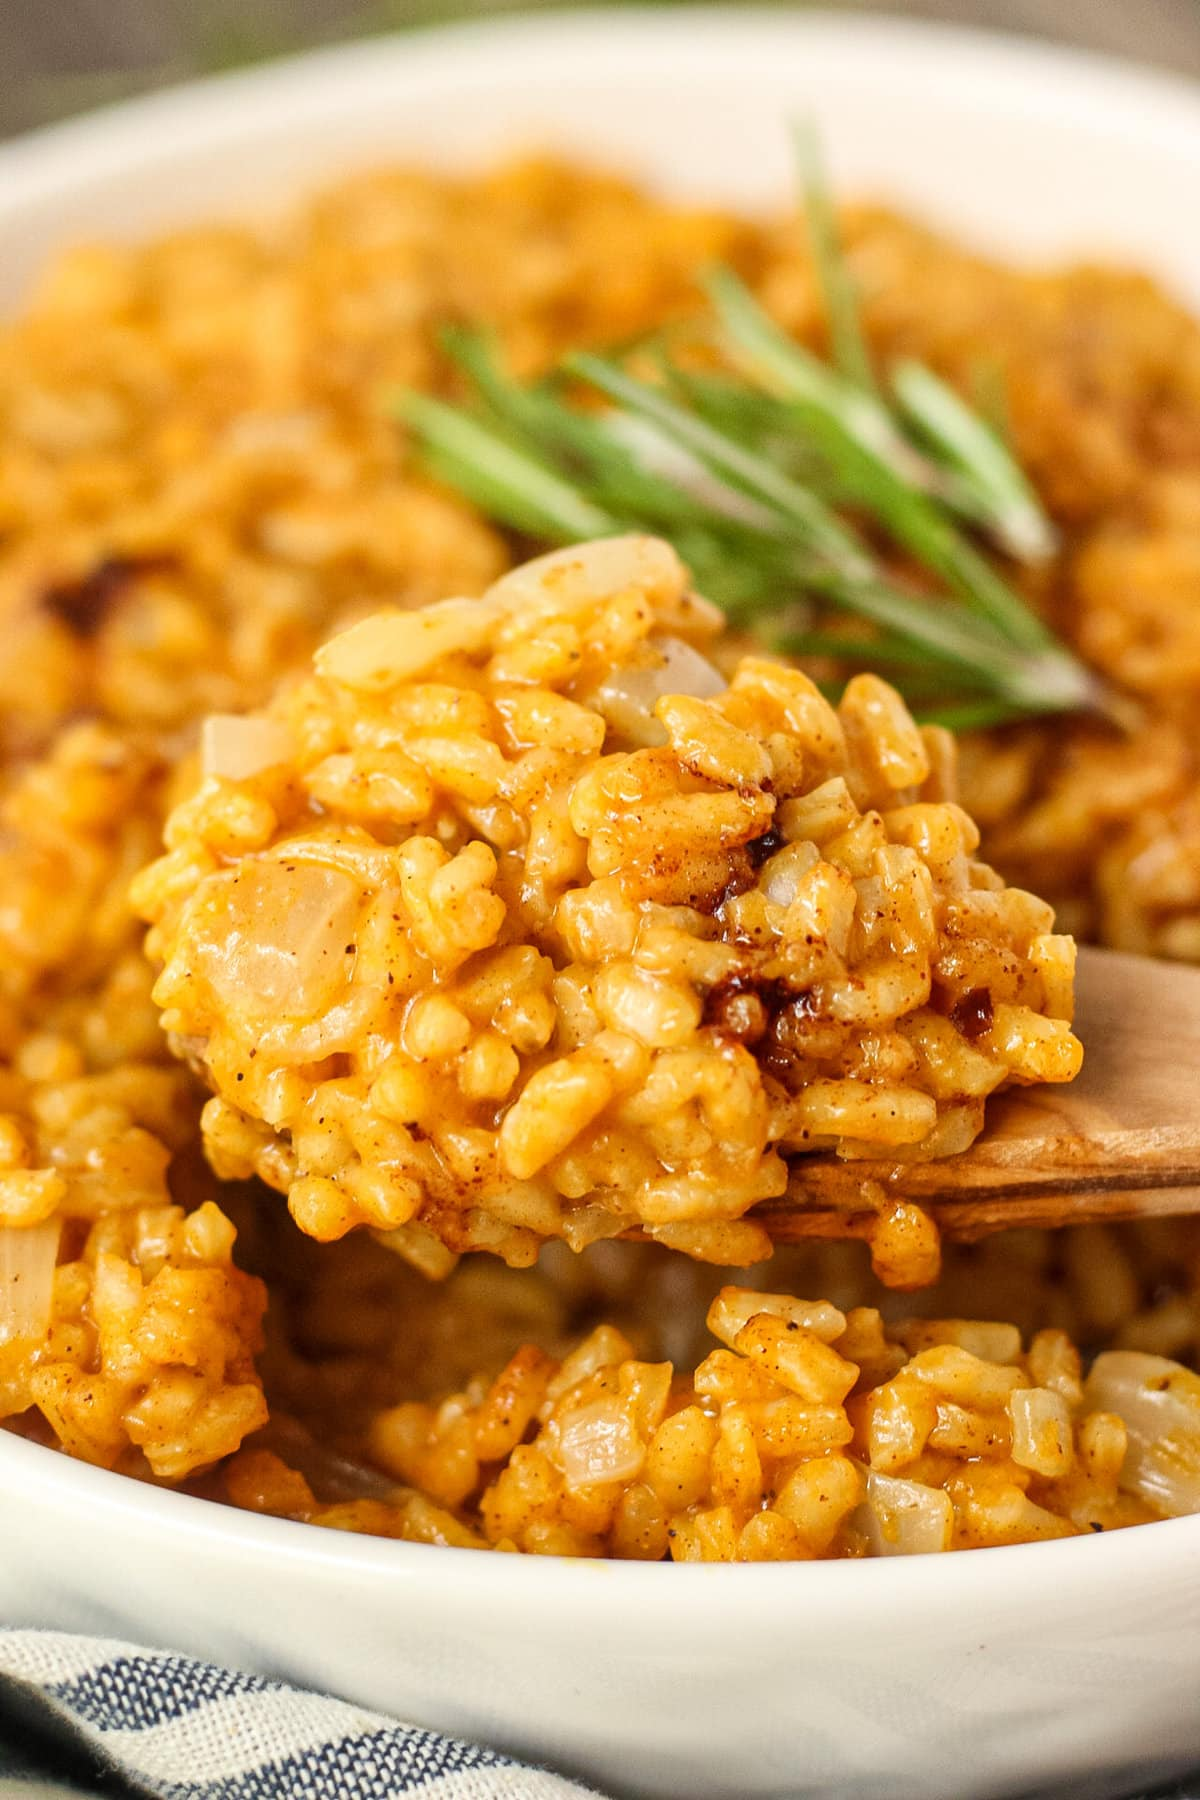 close up side angle shot of creamy pumpkin risotto on a wooden spoon in the forefront with more risotto in a white serving bowl with a striped linen underneath in the background.